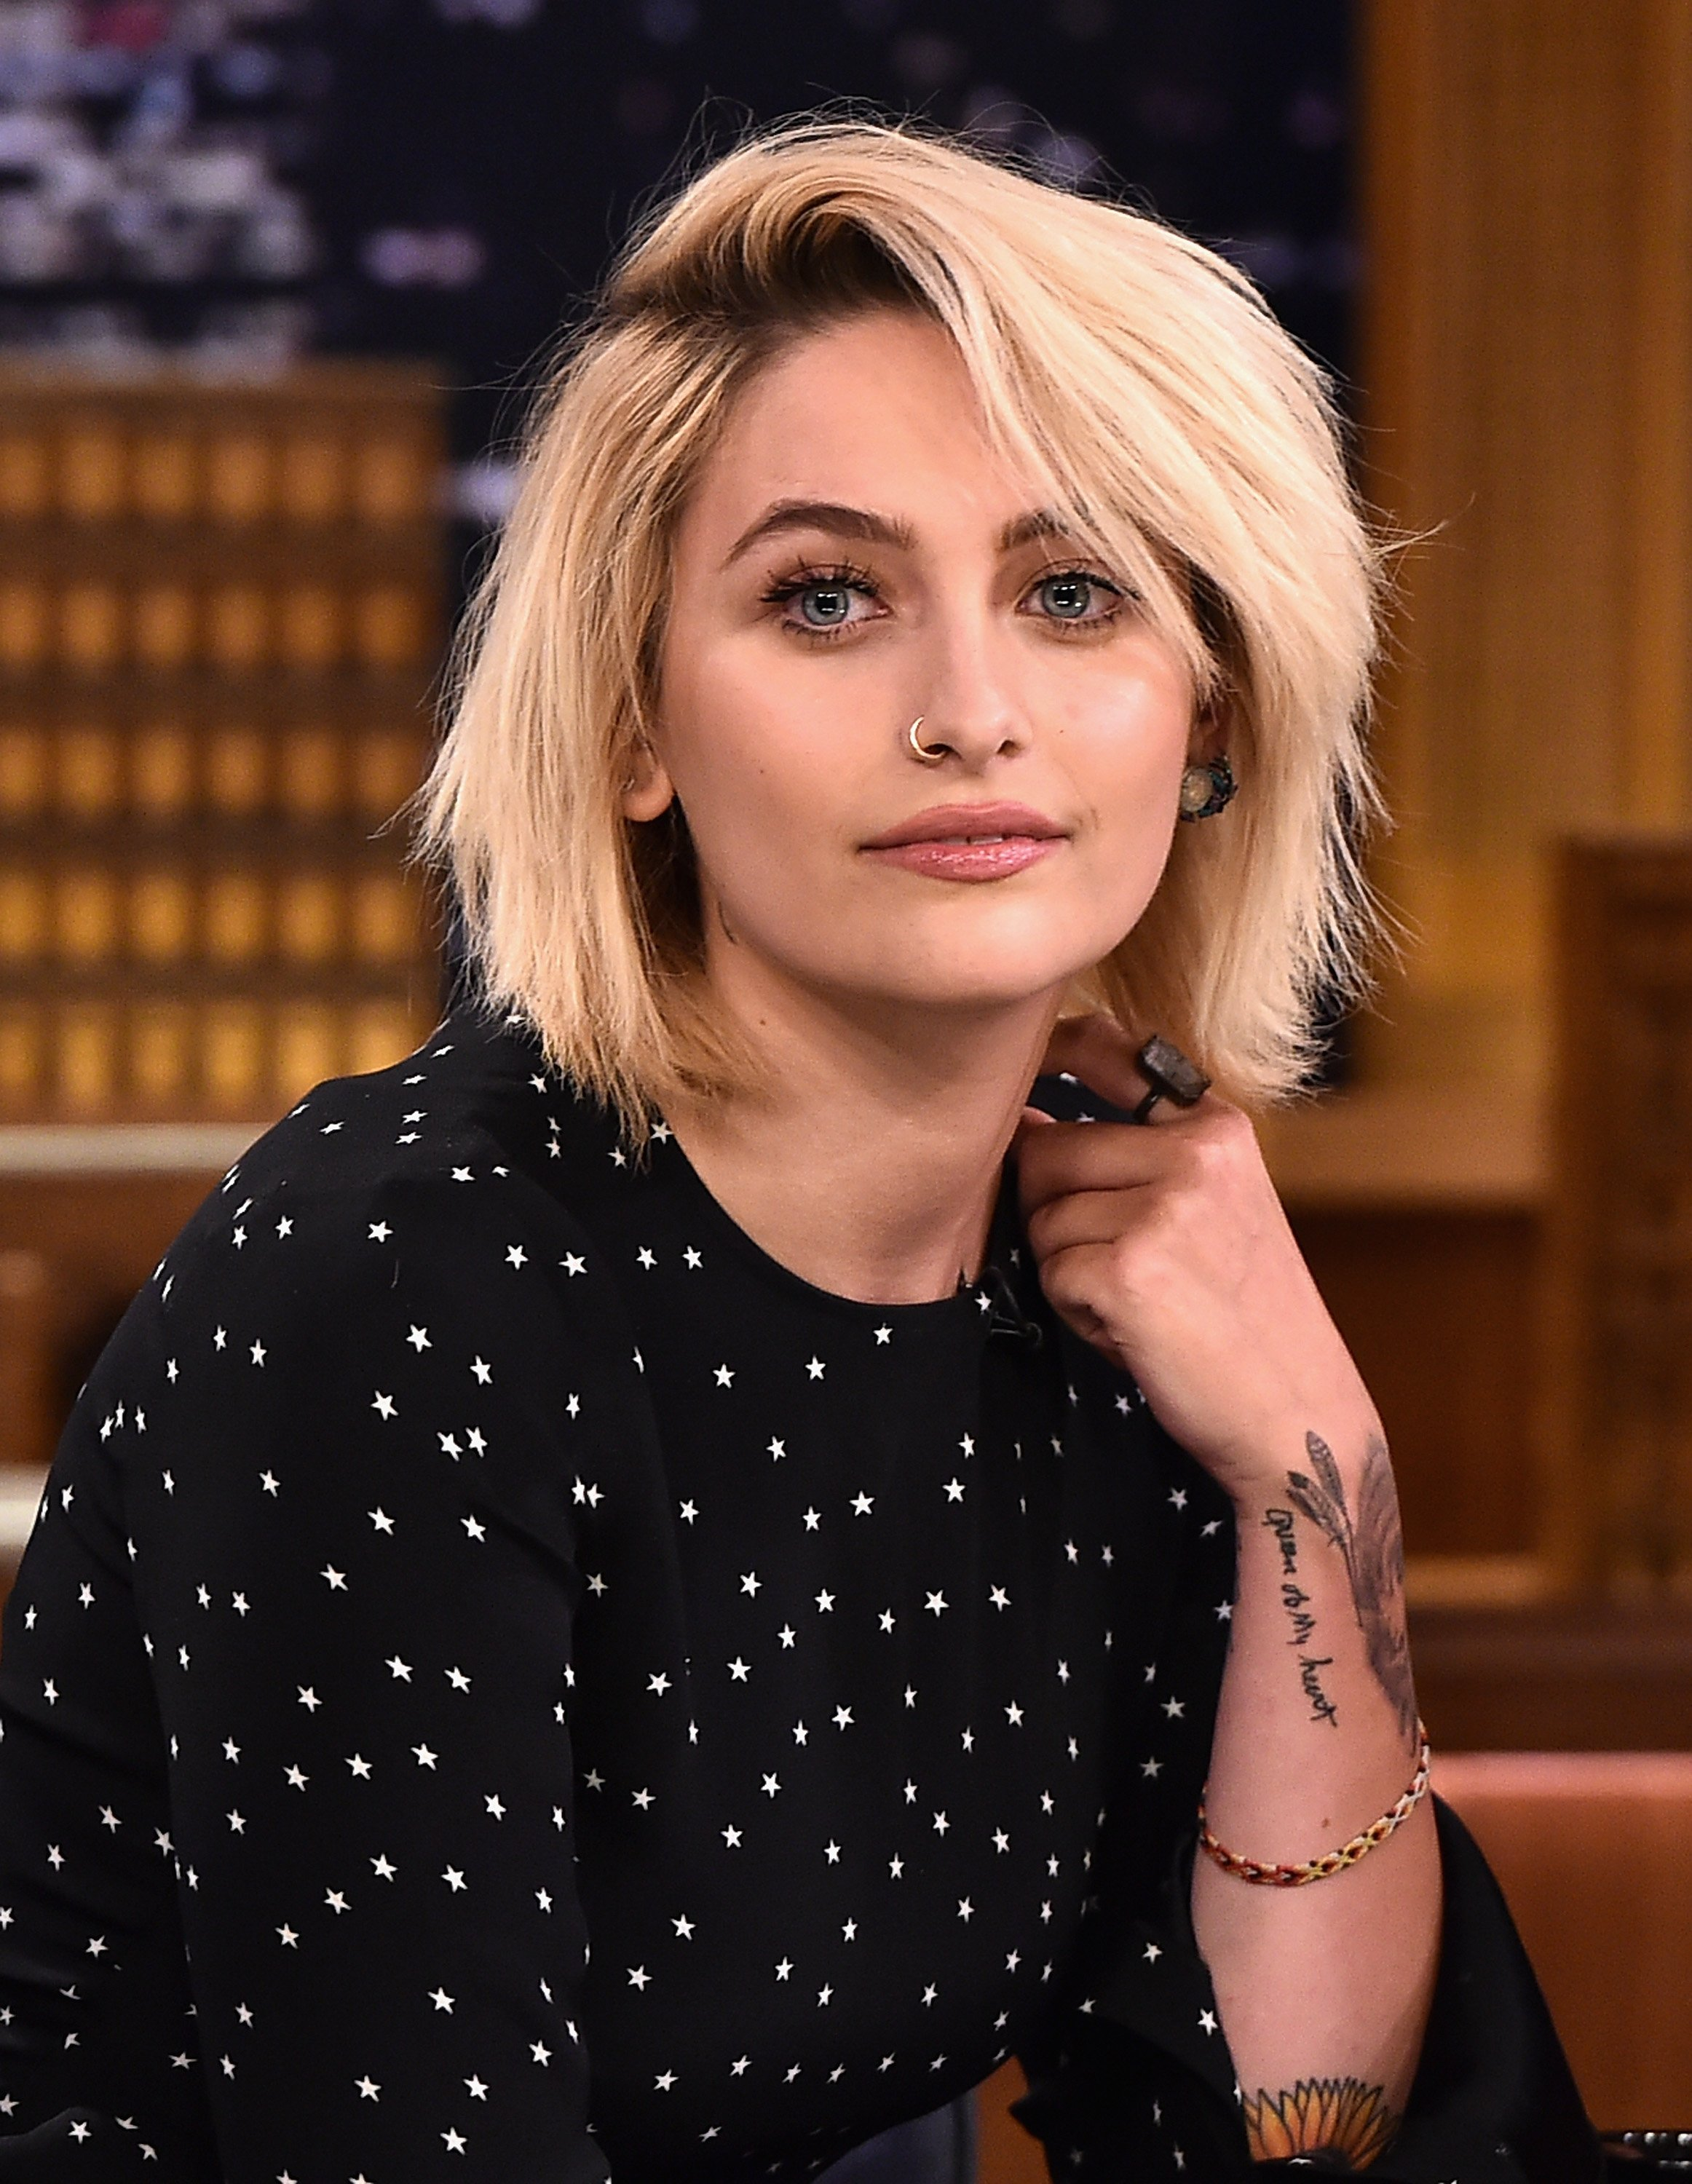 """Paris Jackson pictured on """"The Tonight Show Starring Jimmy Fallon."""" 2017, New York City. 